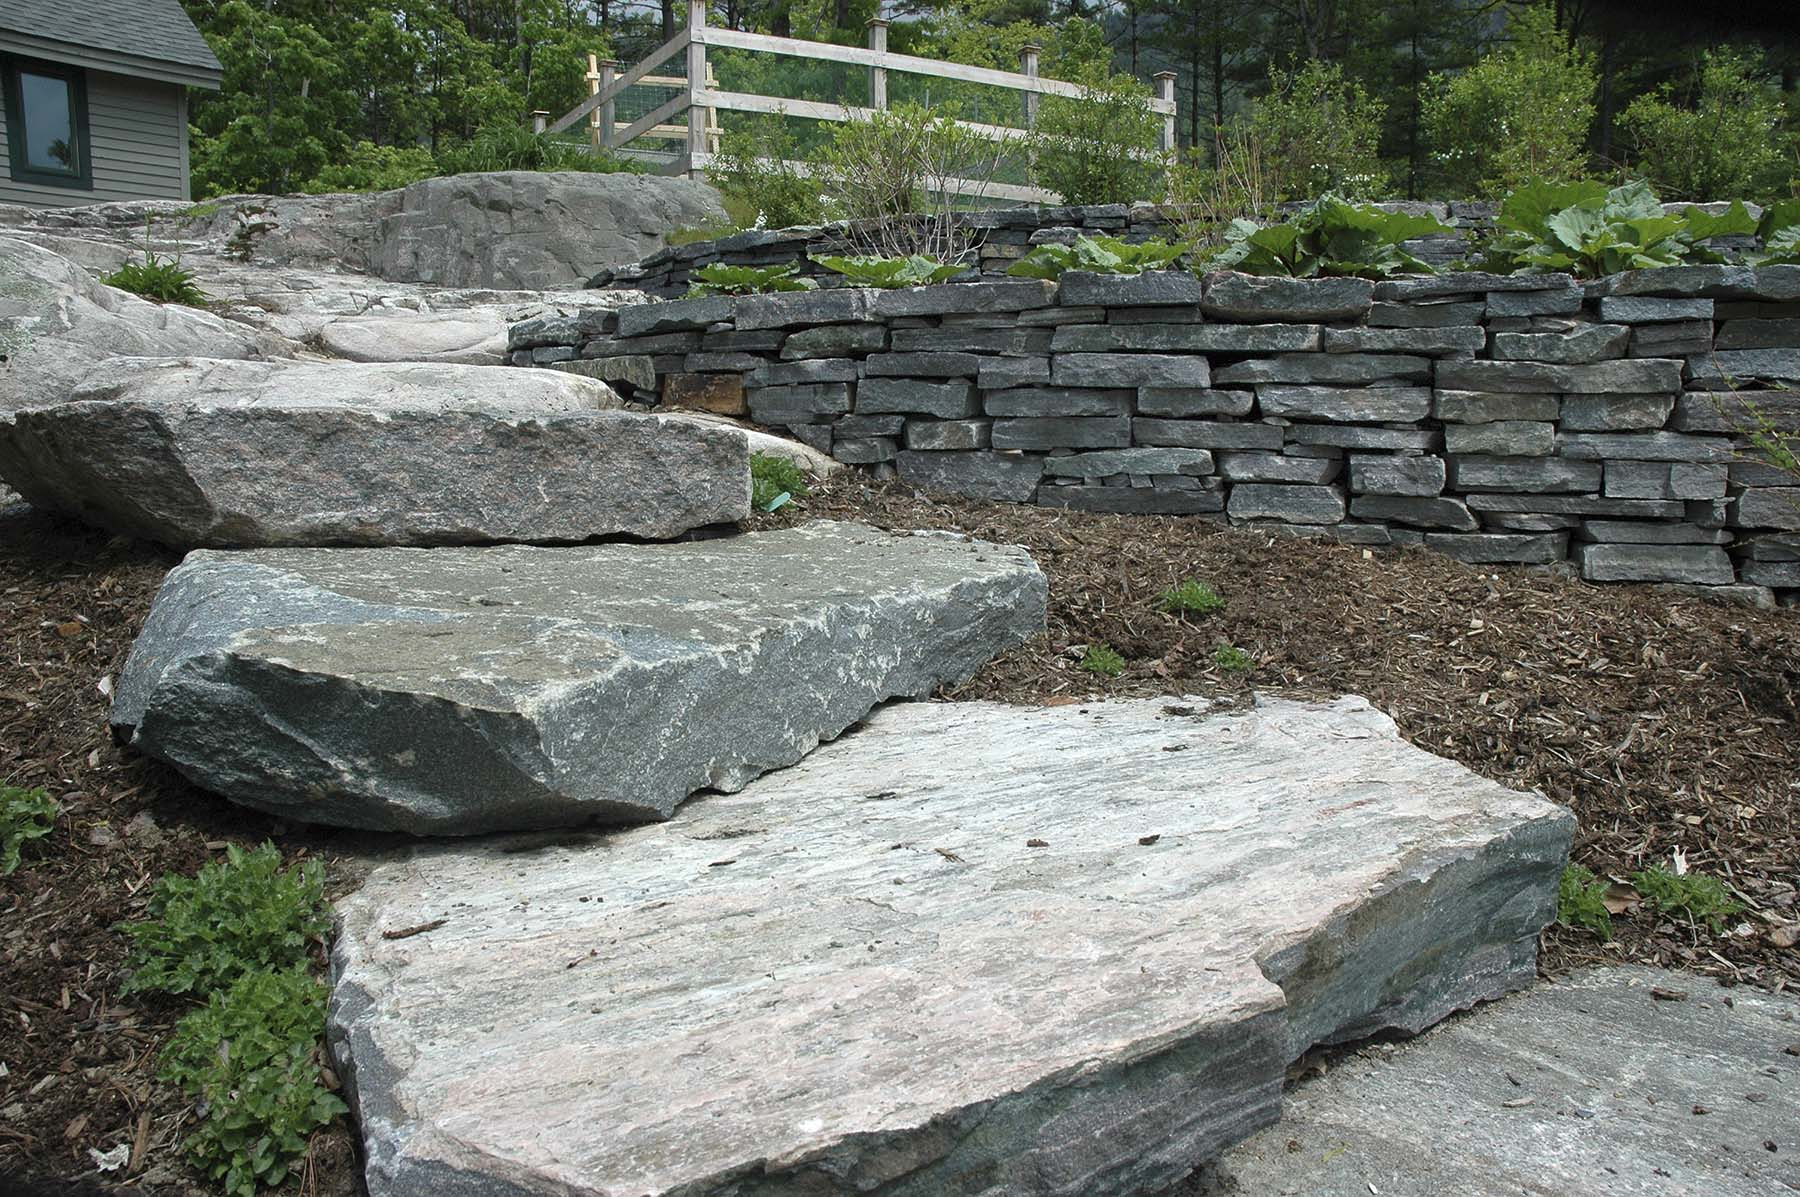 saratoga granite mosaic natural stone slab steps outside residential home